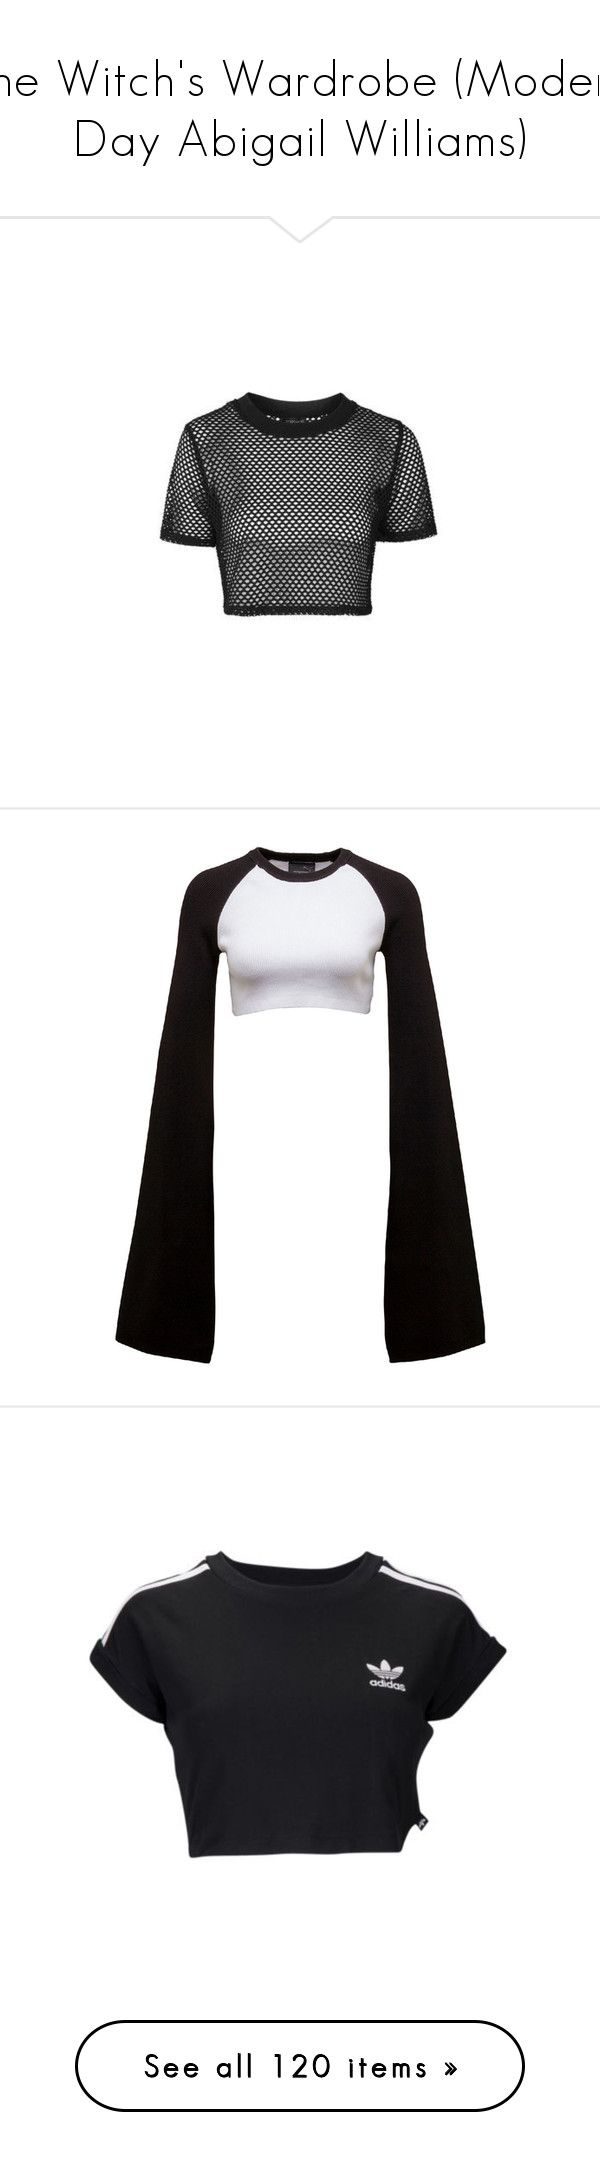 """""""The Witch's Wardrobe (Modern Day Abigail Williams)"""" by holographicqueen ❤ liked on Polyvore featuring tops, t-shirts, crop top, shirts, black, shirt crop top, topshop shirts, polyester sports shirts, sports crop tops and crop tops"""